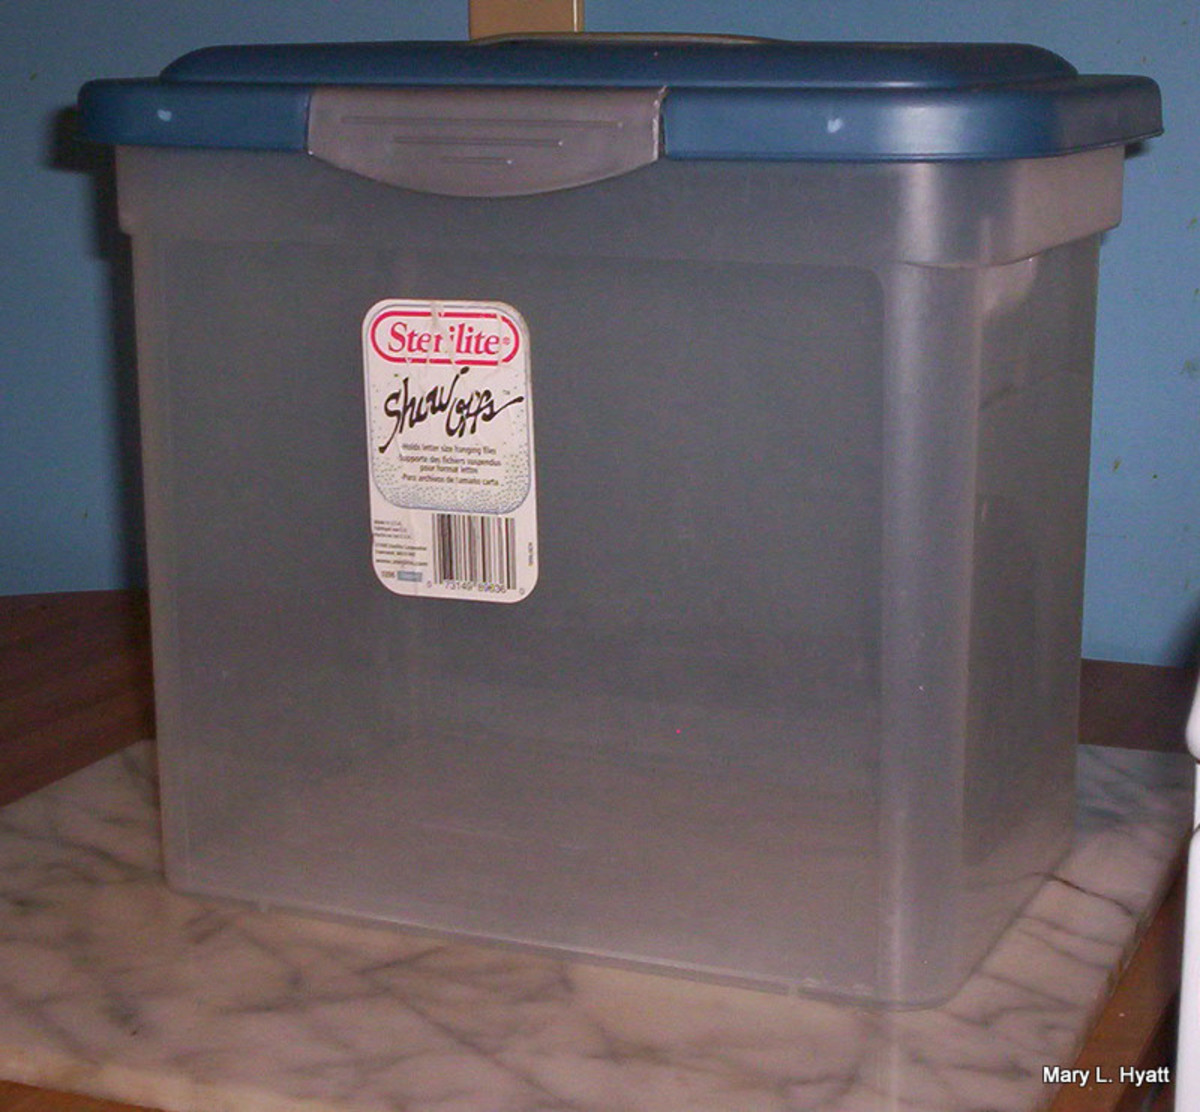 One of the containers with a good fitting lid.